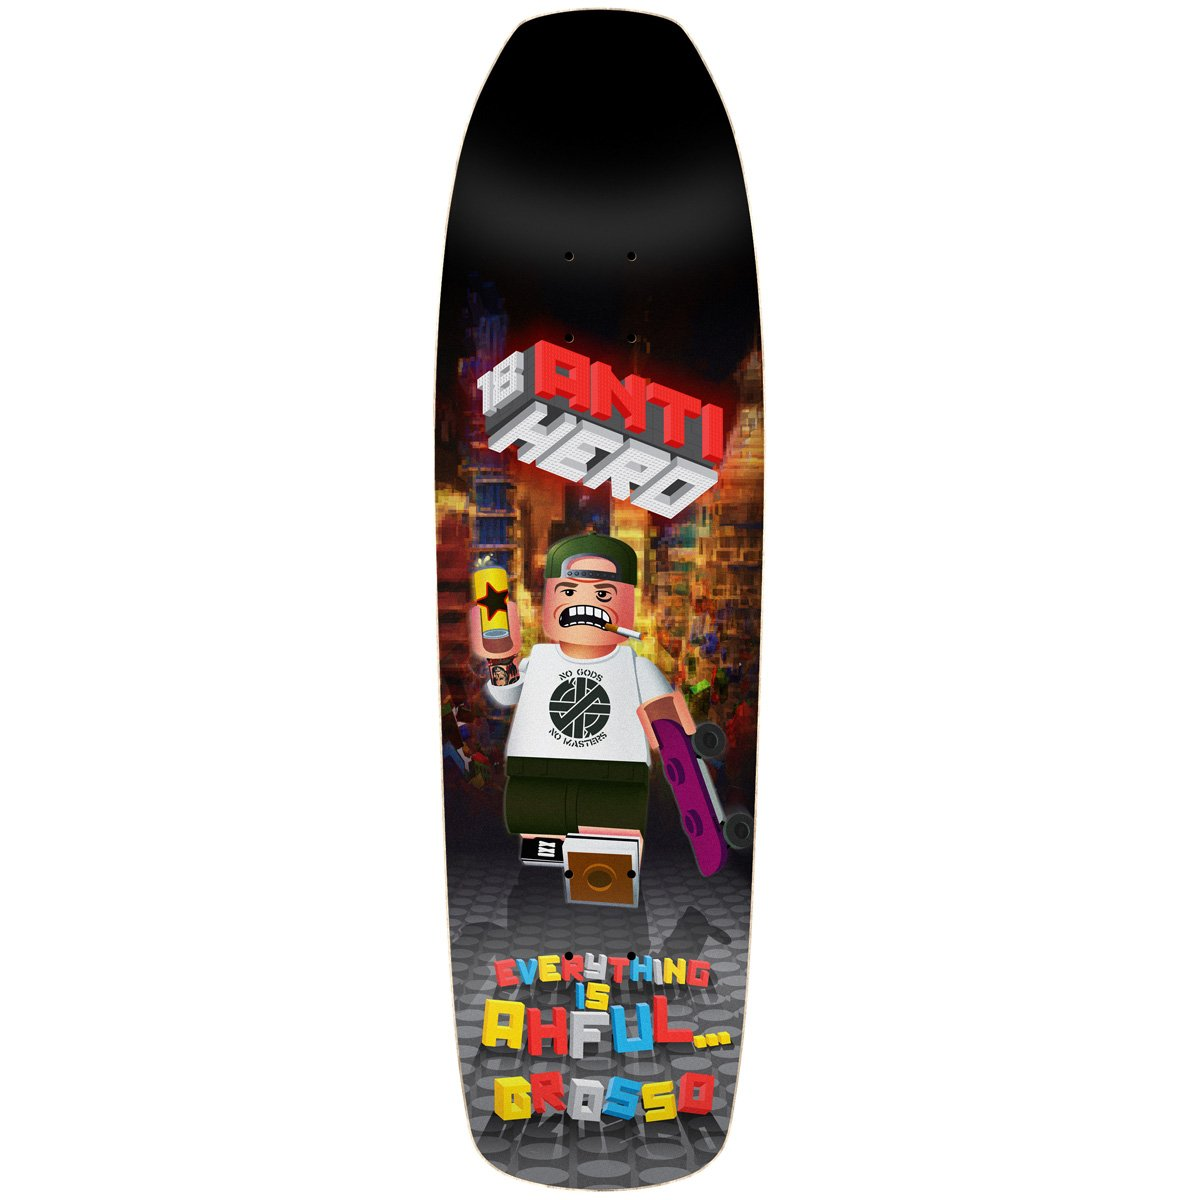 Anti-Hero Everything Ahful Grosso Deck - 9.2 Product Photo #1